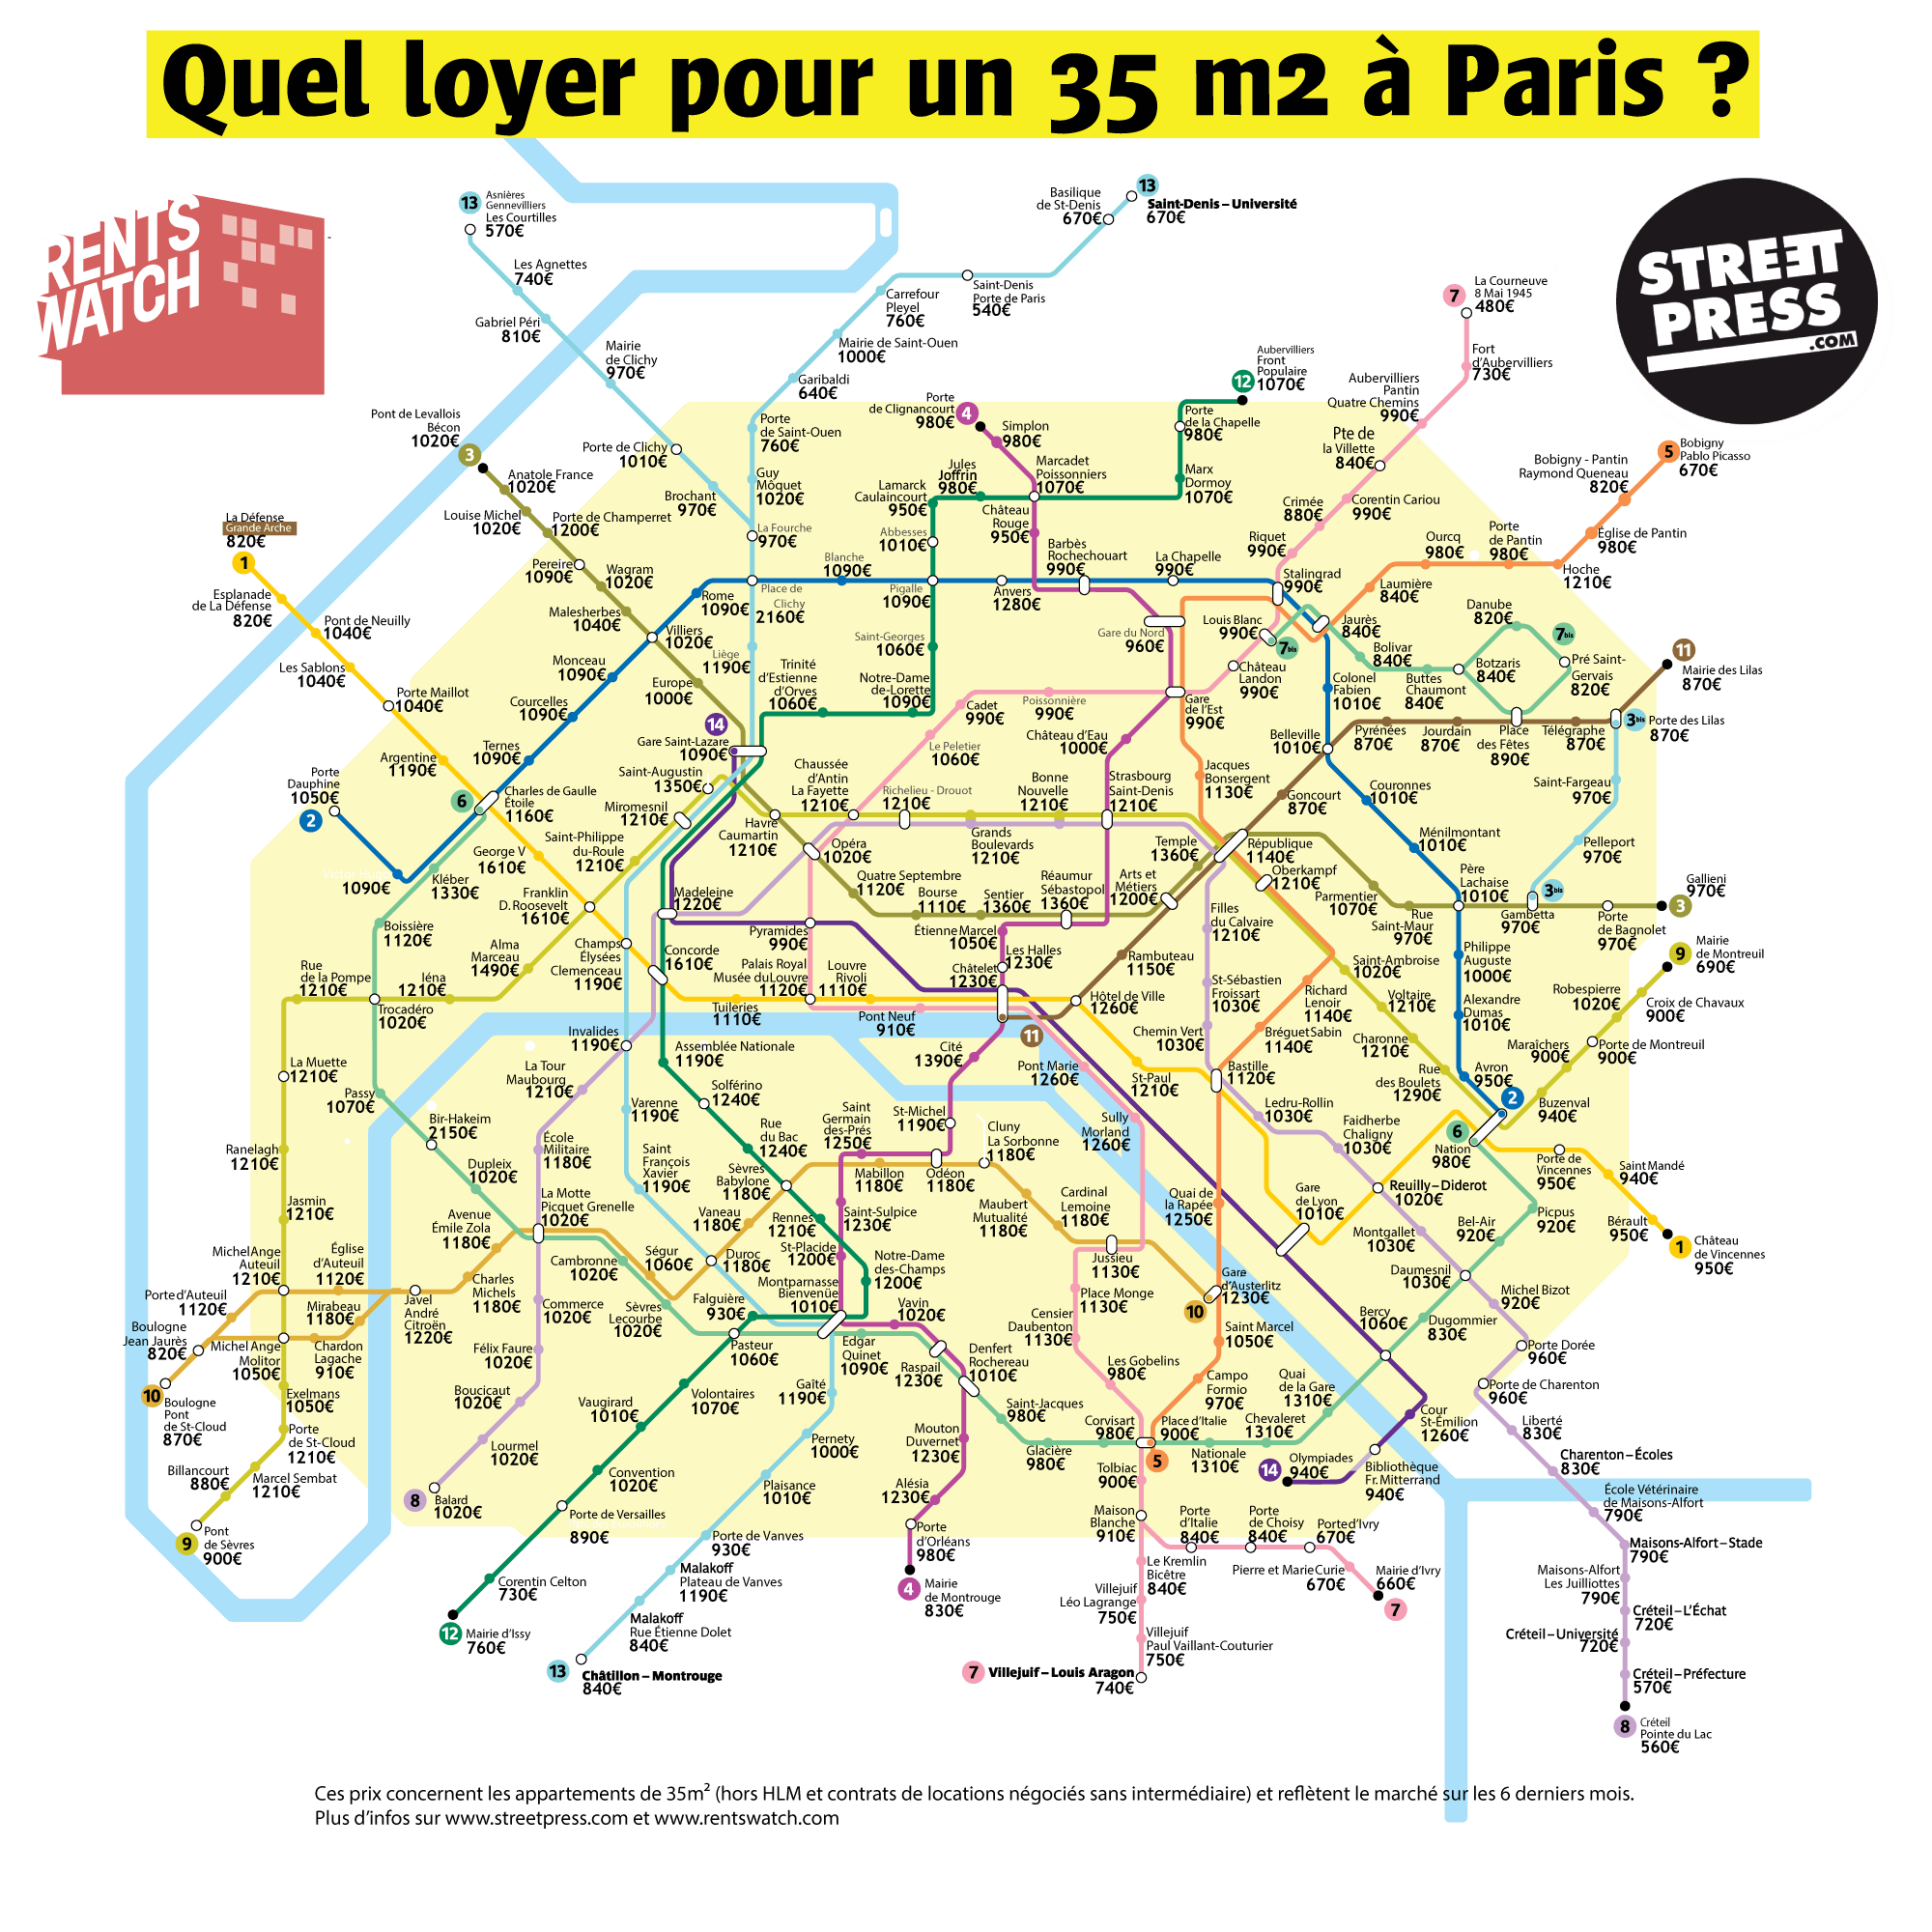 la carte des loyers d 39 un 35 m2 paris pour chaque station de m tro. Black Bedroom Furniture Sets. Home Design Ideas